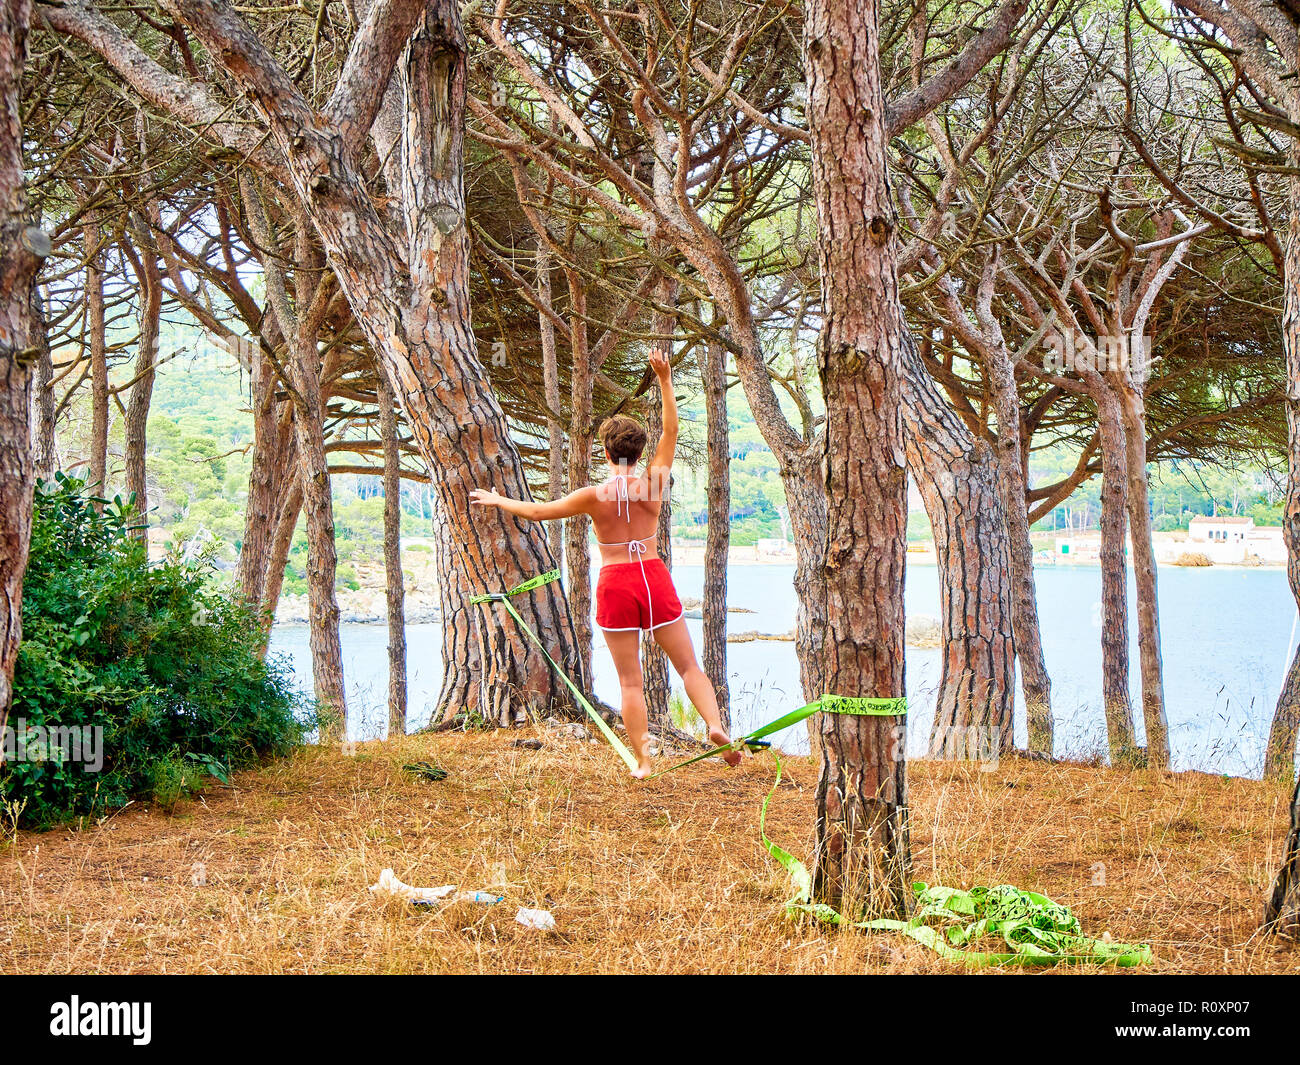 A young woman practicing Slacklining with a webbing tensioned between two pines of a Mediterranean forest in Catalonia, Spain. - Stock Image